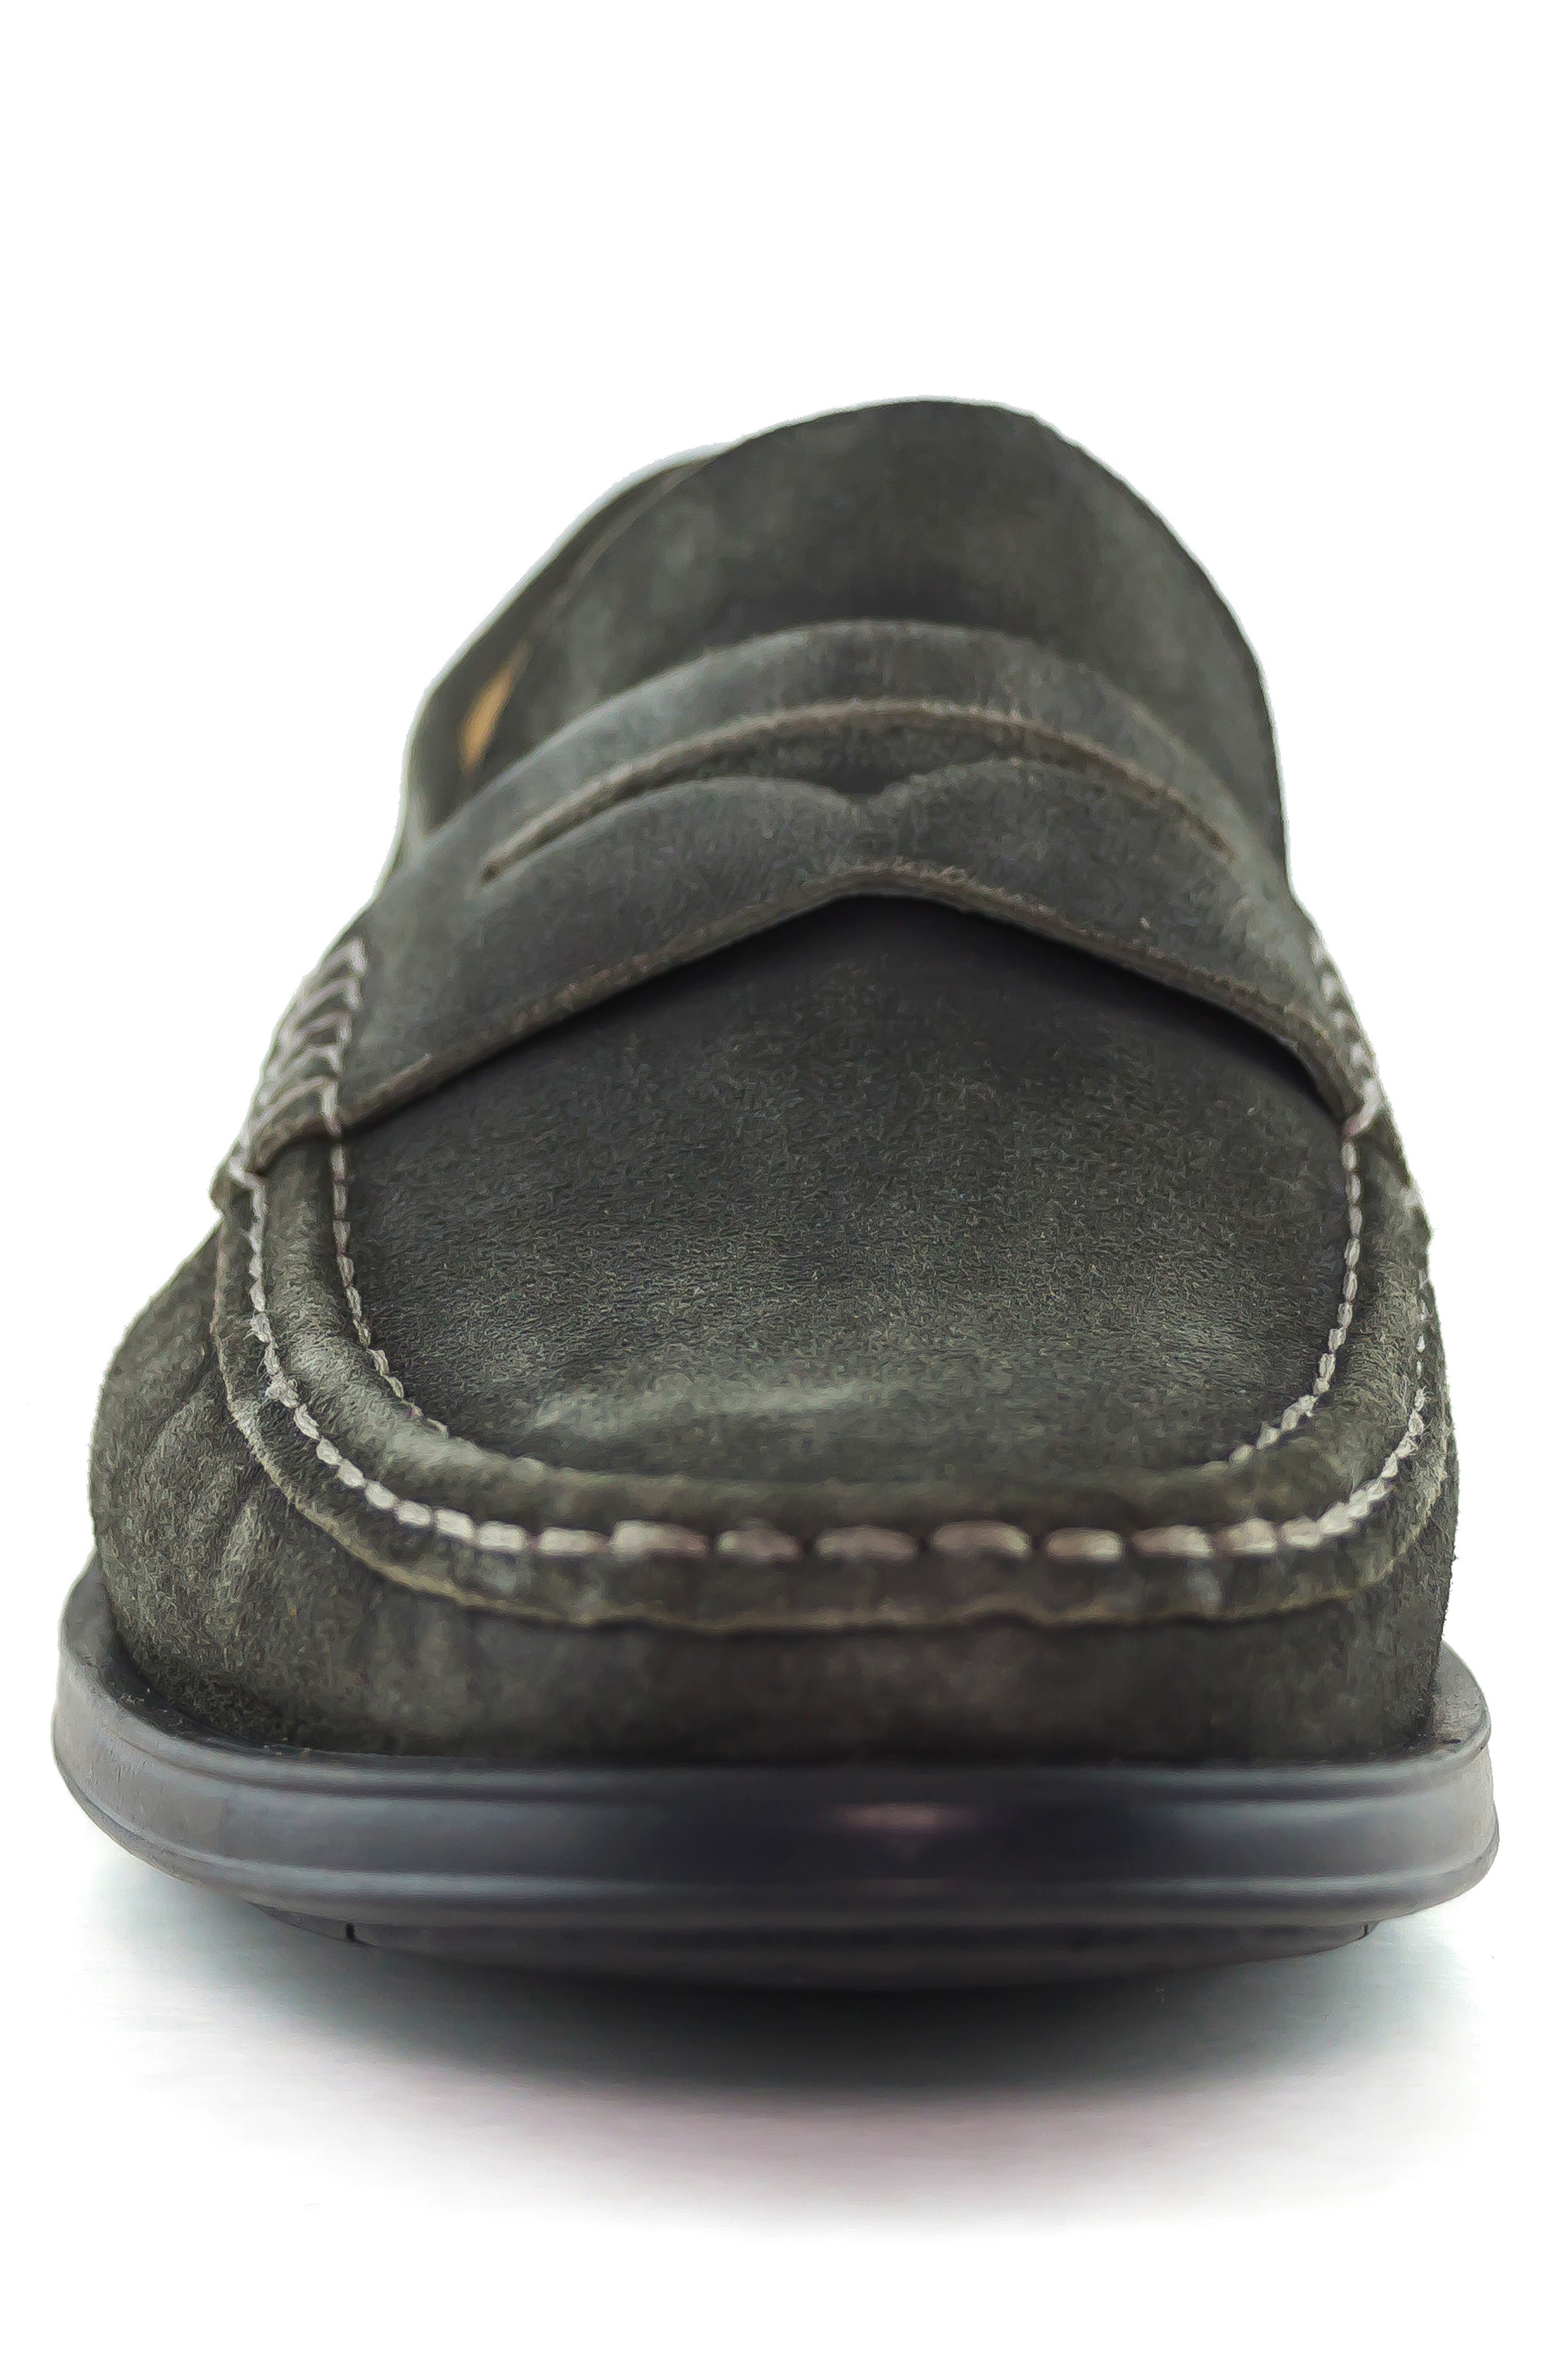 Cortland Penny Loafer,                             Alternate thumbnail 4, color,                             GRAPHITE LEATHER